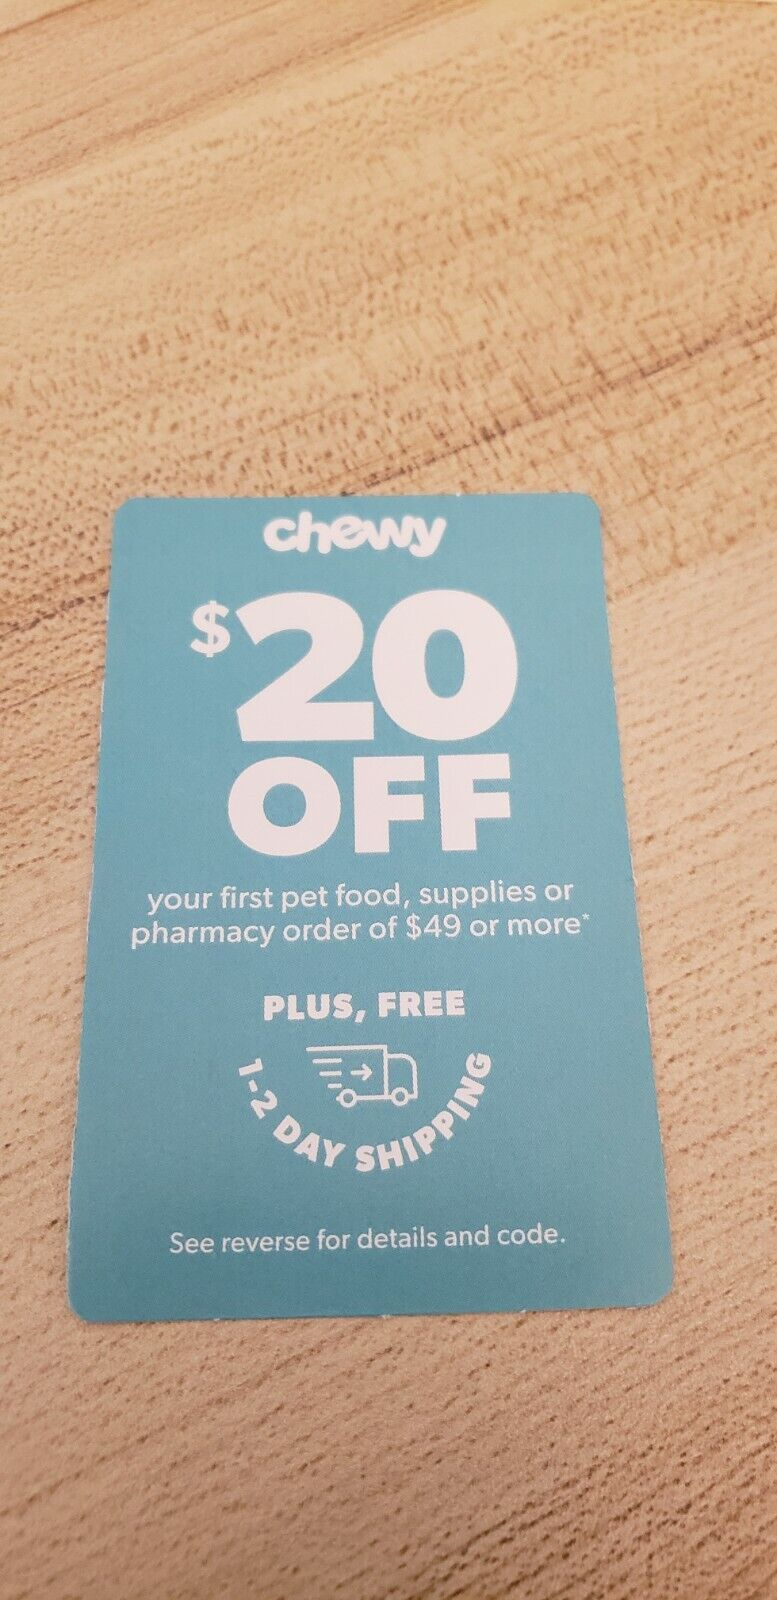 Chewy Coupon 20 Off First Order 49 Or More Exp. 06/30/21 - $7.50